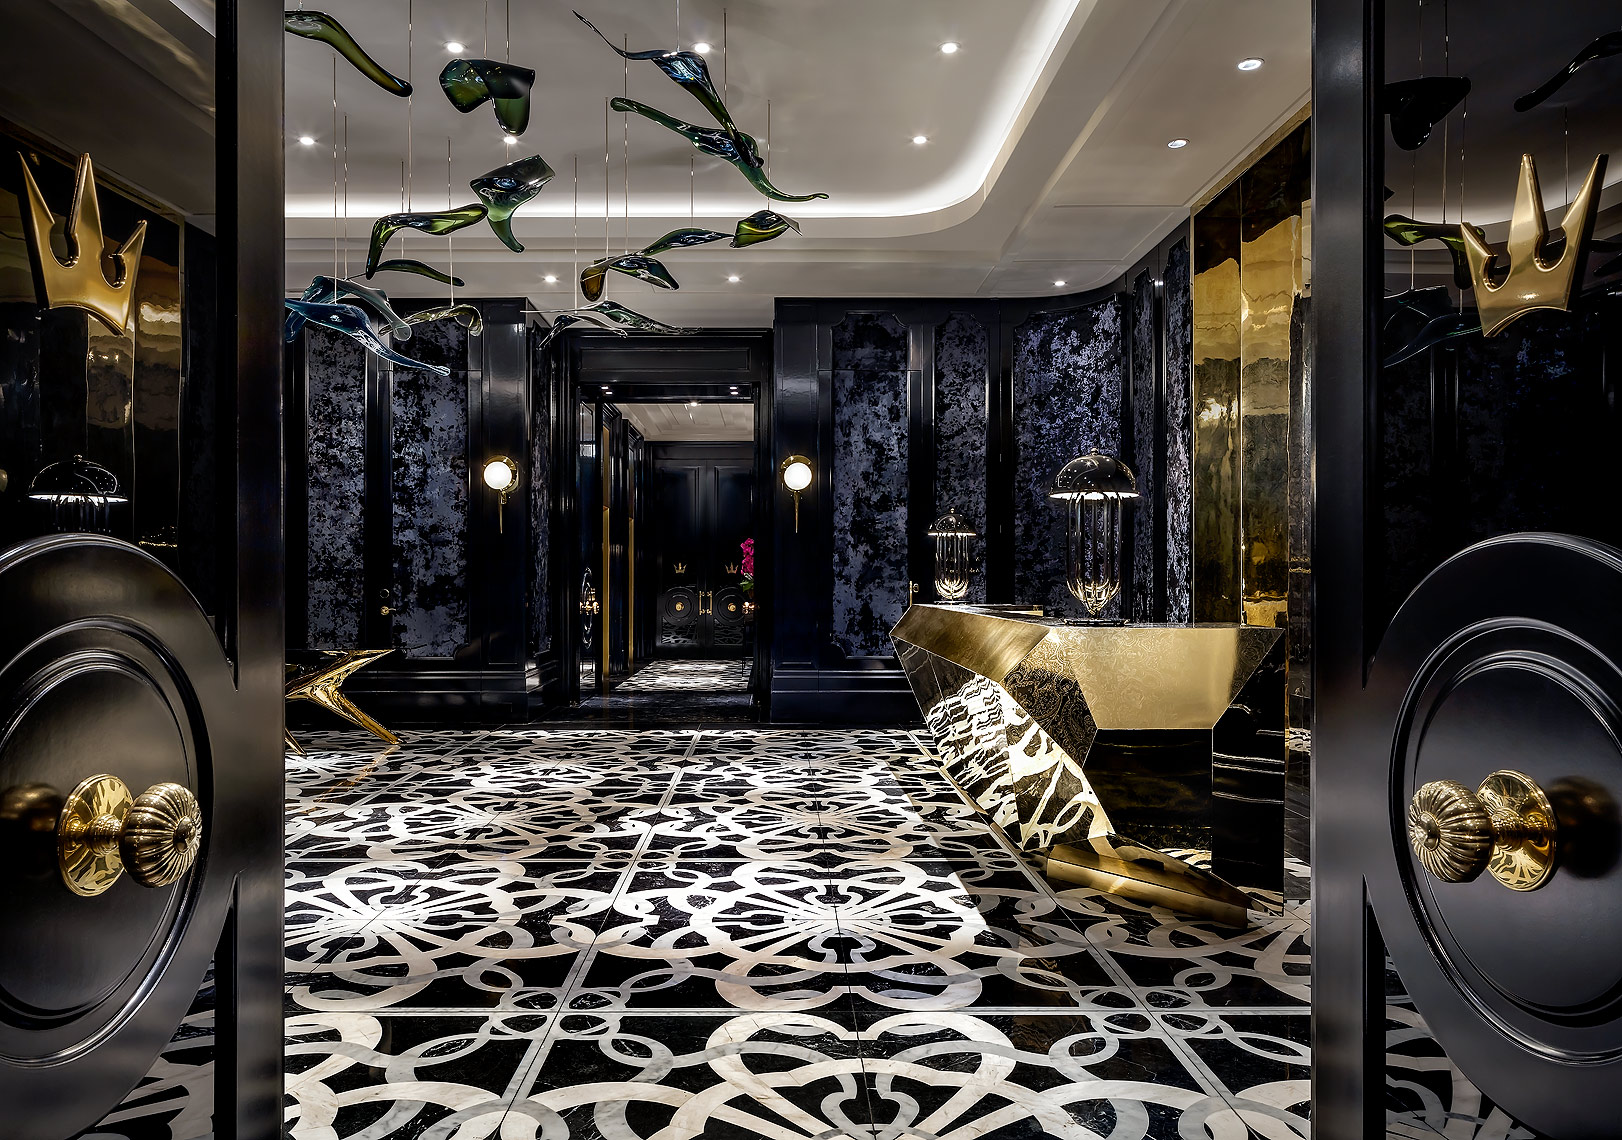 Bisha Hotel, Toronto - Lobby Reception by Toronto hospitality photographer, Brandon Barré